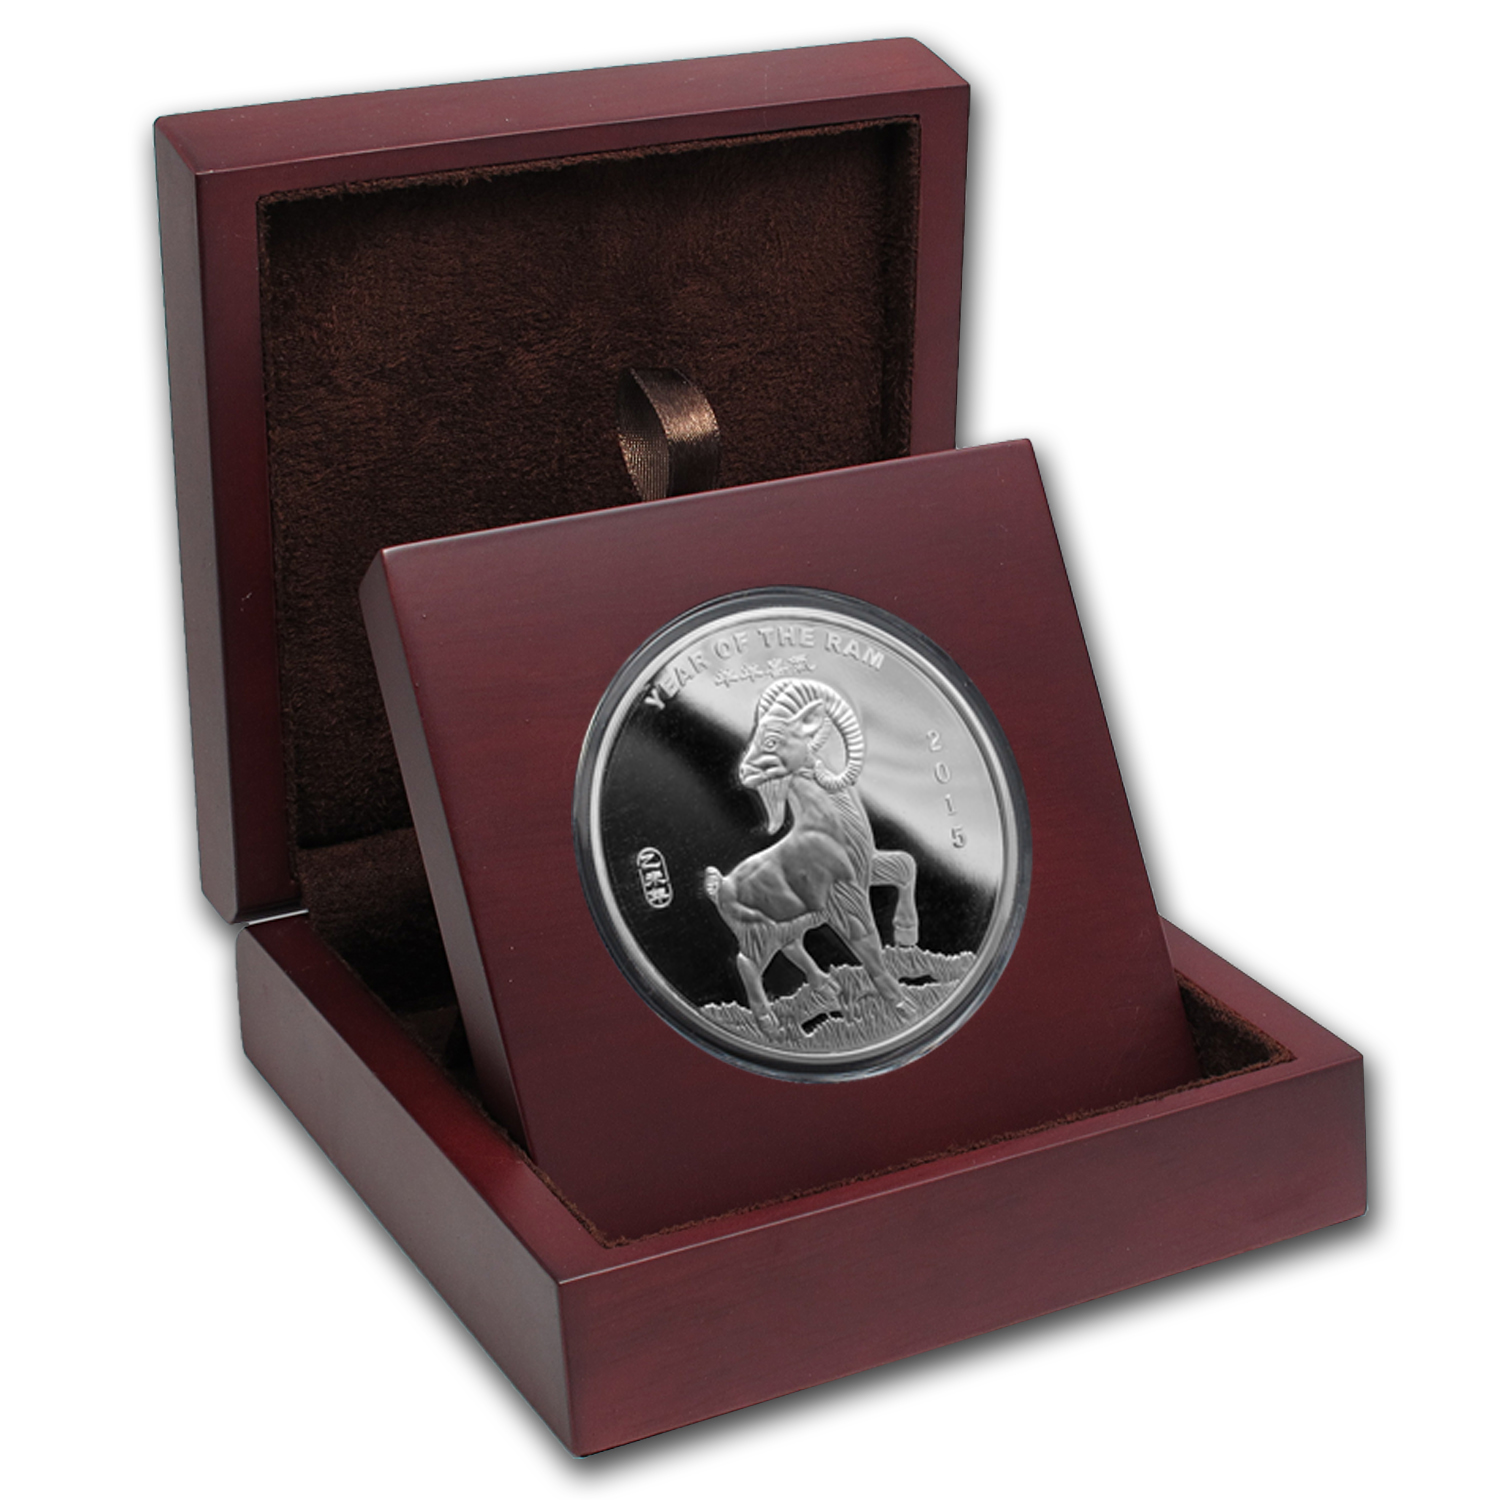 APMEX Wood Gift Box - 5 oz Silver Round SMI (63.5 mm)